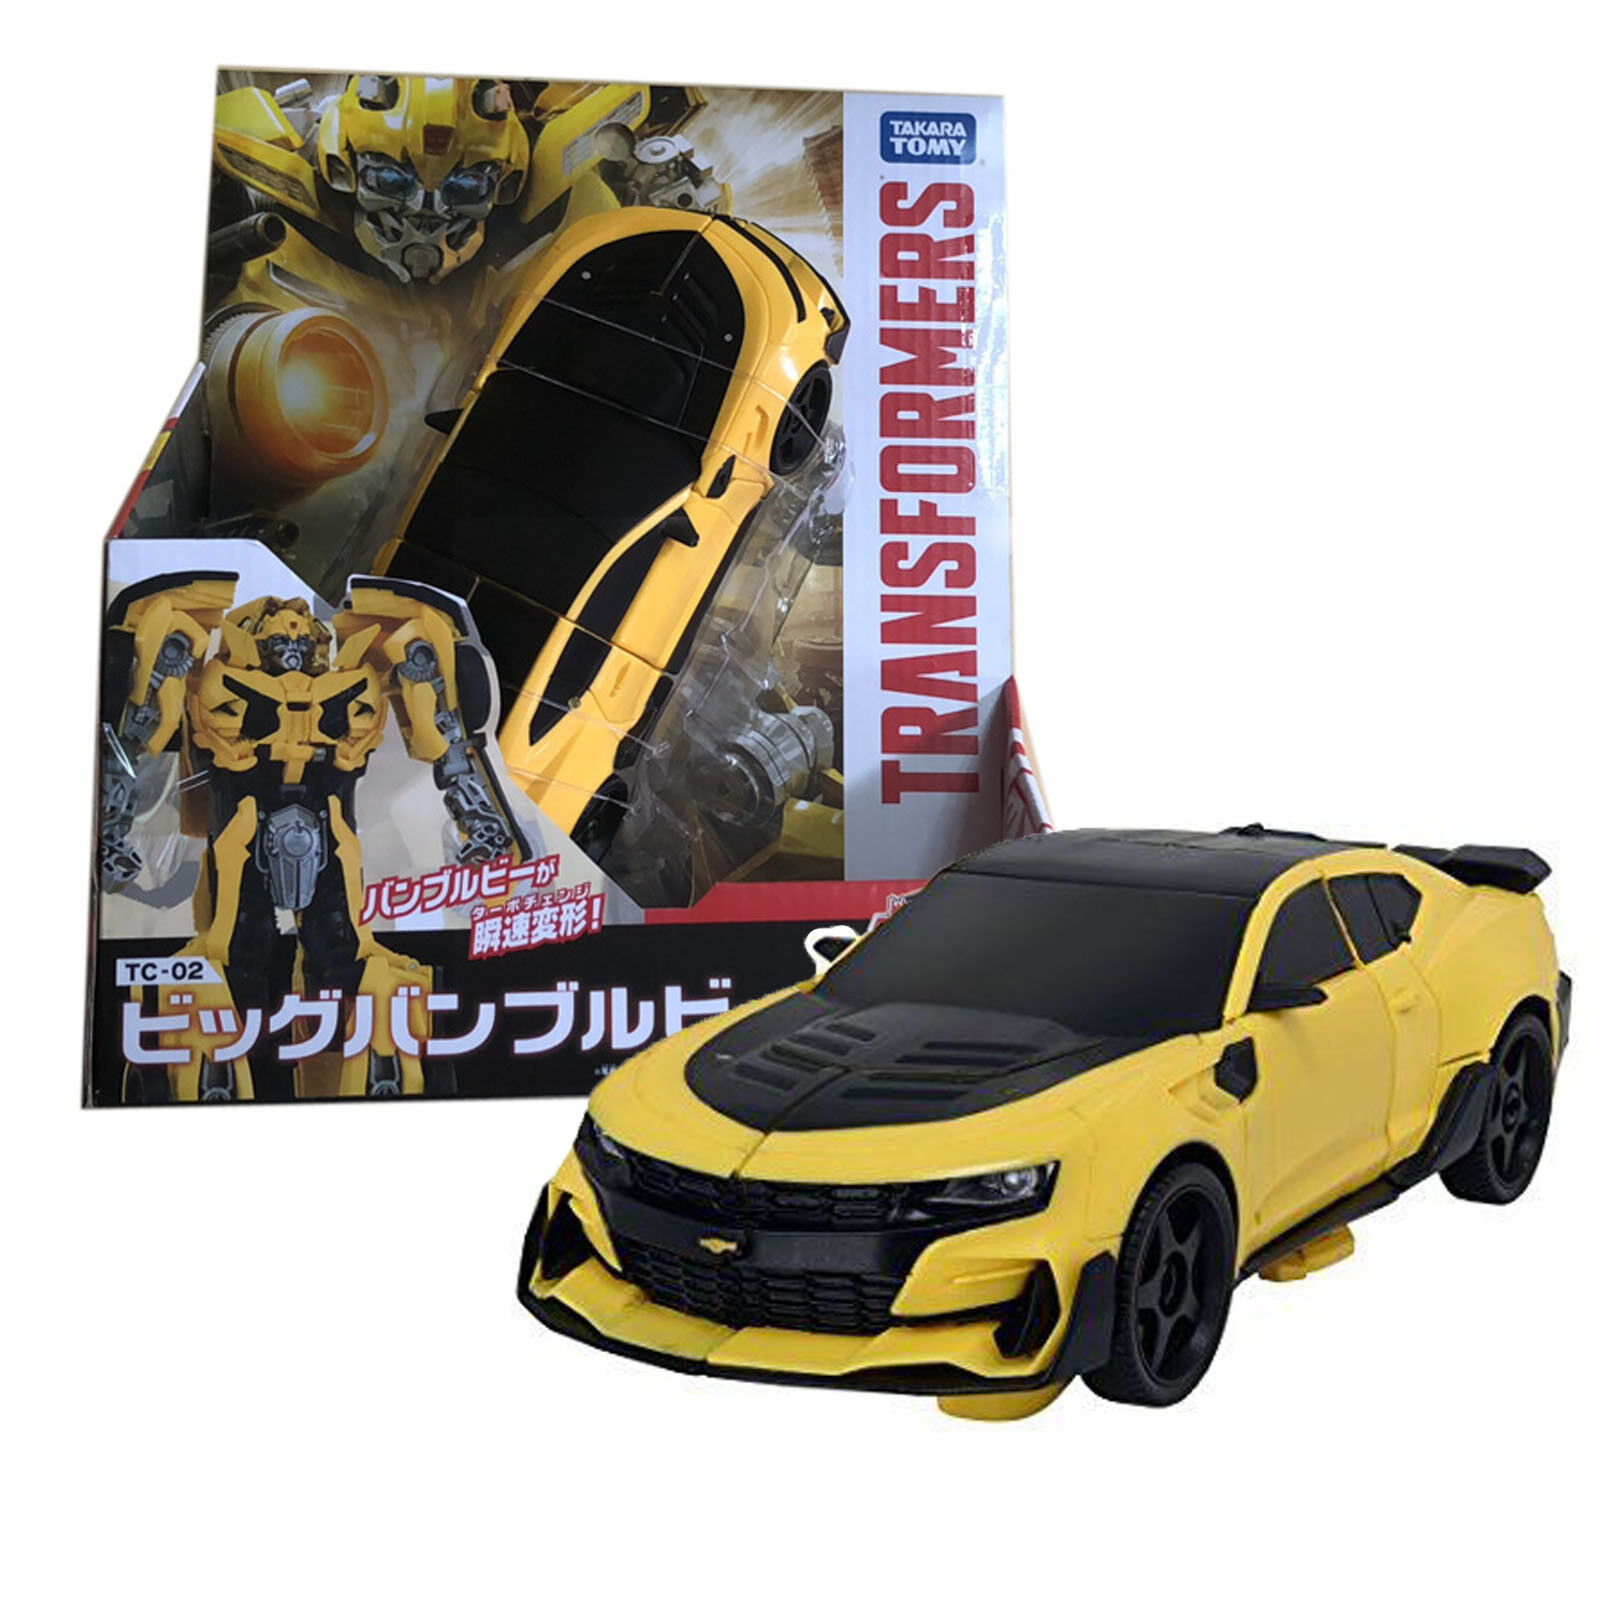 Transformers Turbo Change TC-02 TC 02 BUMBLEBEE Action Figure Collection Toy Kid